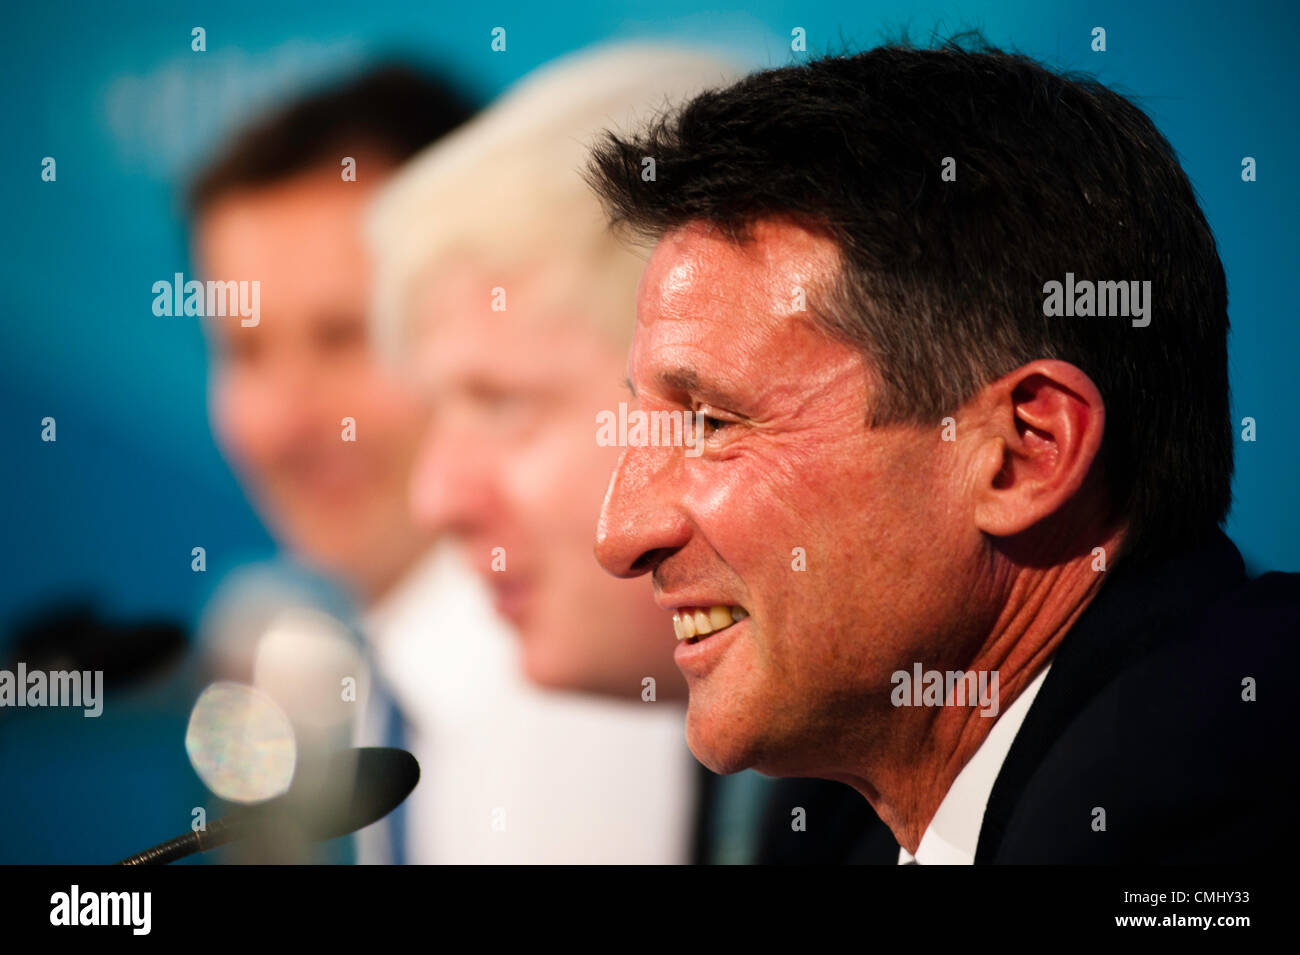 London, UK – 13 August 2012: LOCOG Chair, Sebastian Coe, during the final press conference of the Olympic Games - Stock Image